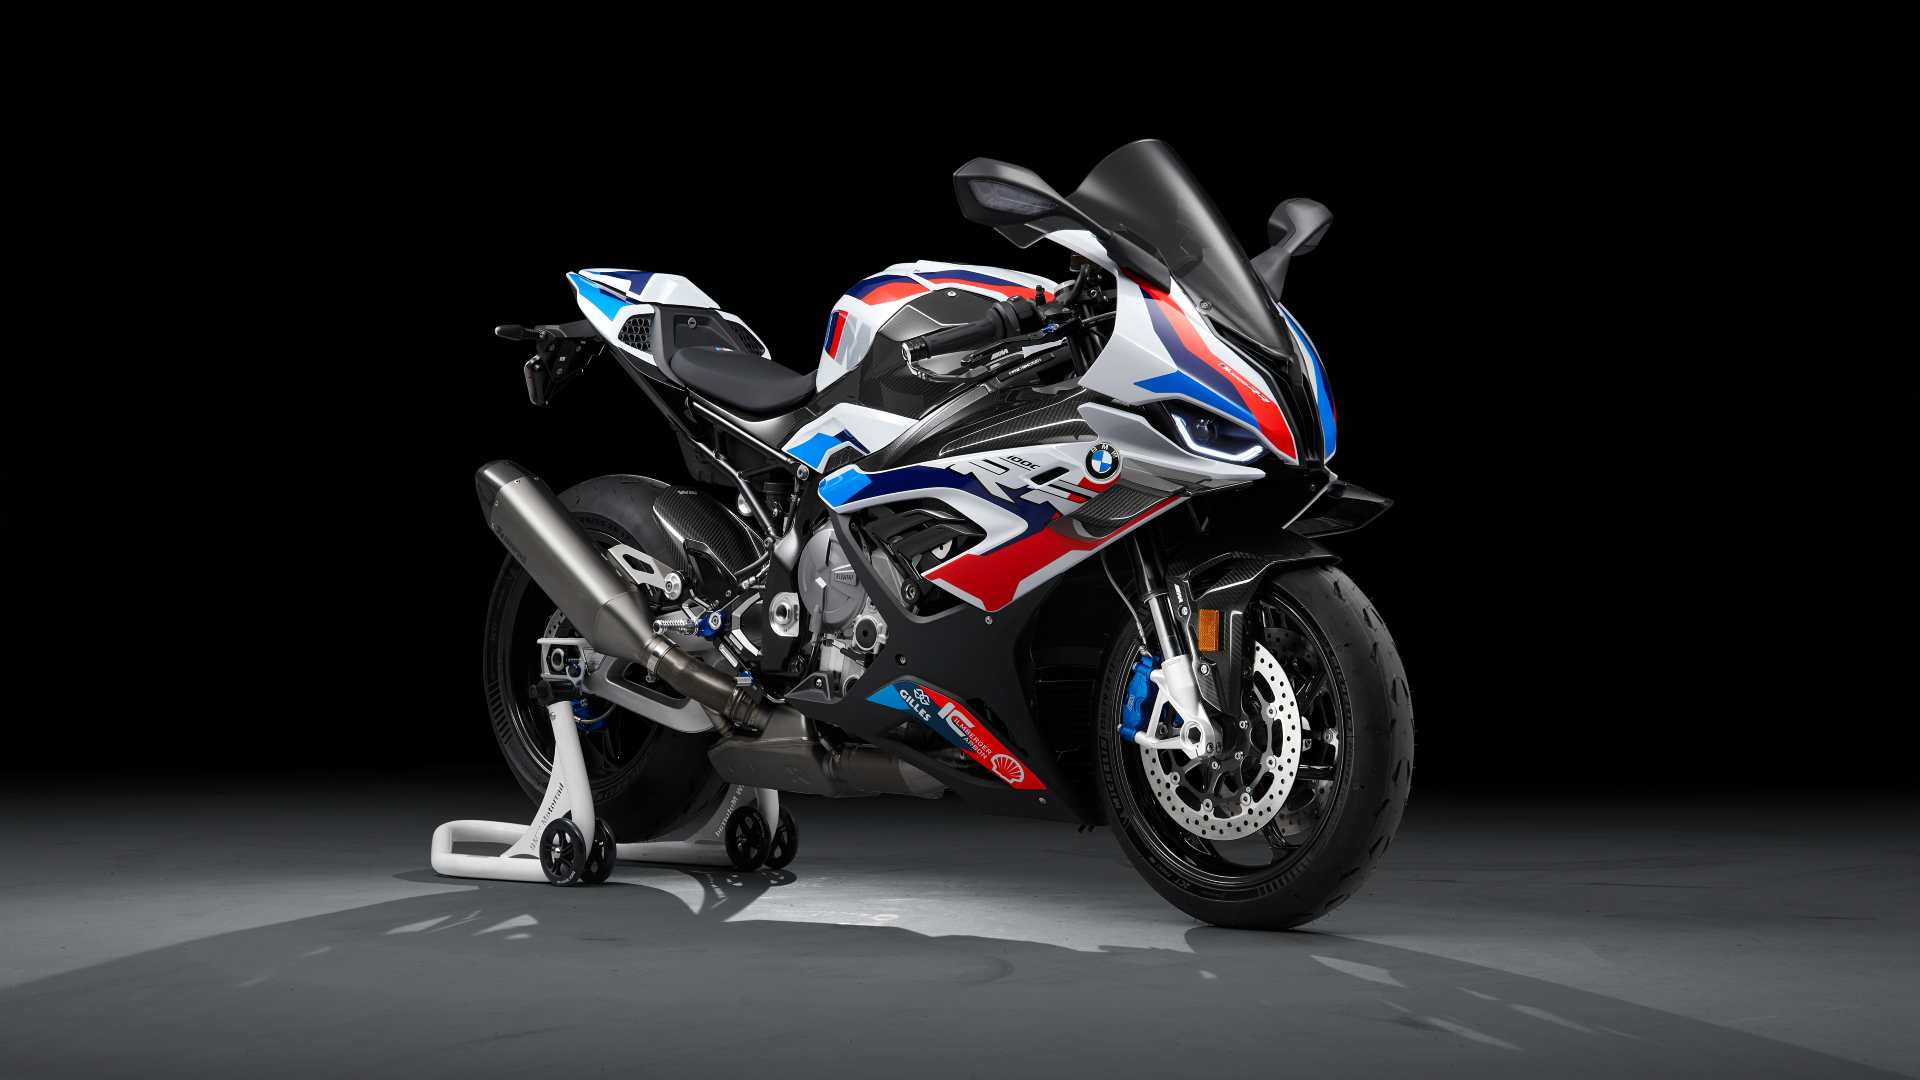 BMW M1000RR set for India launch in April, to be priced in the Rs 45-50 lakh range